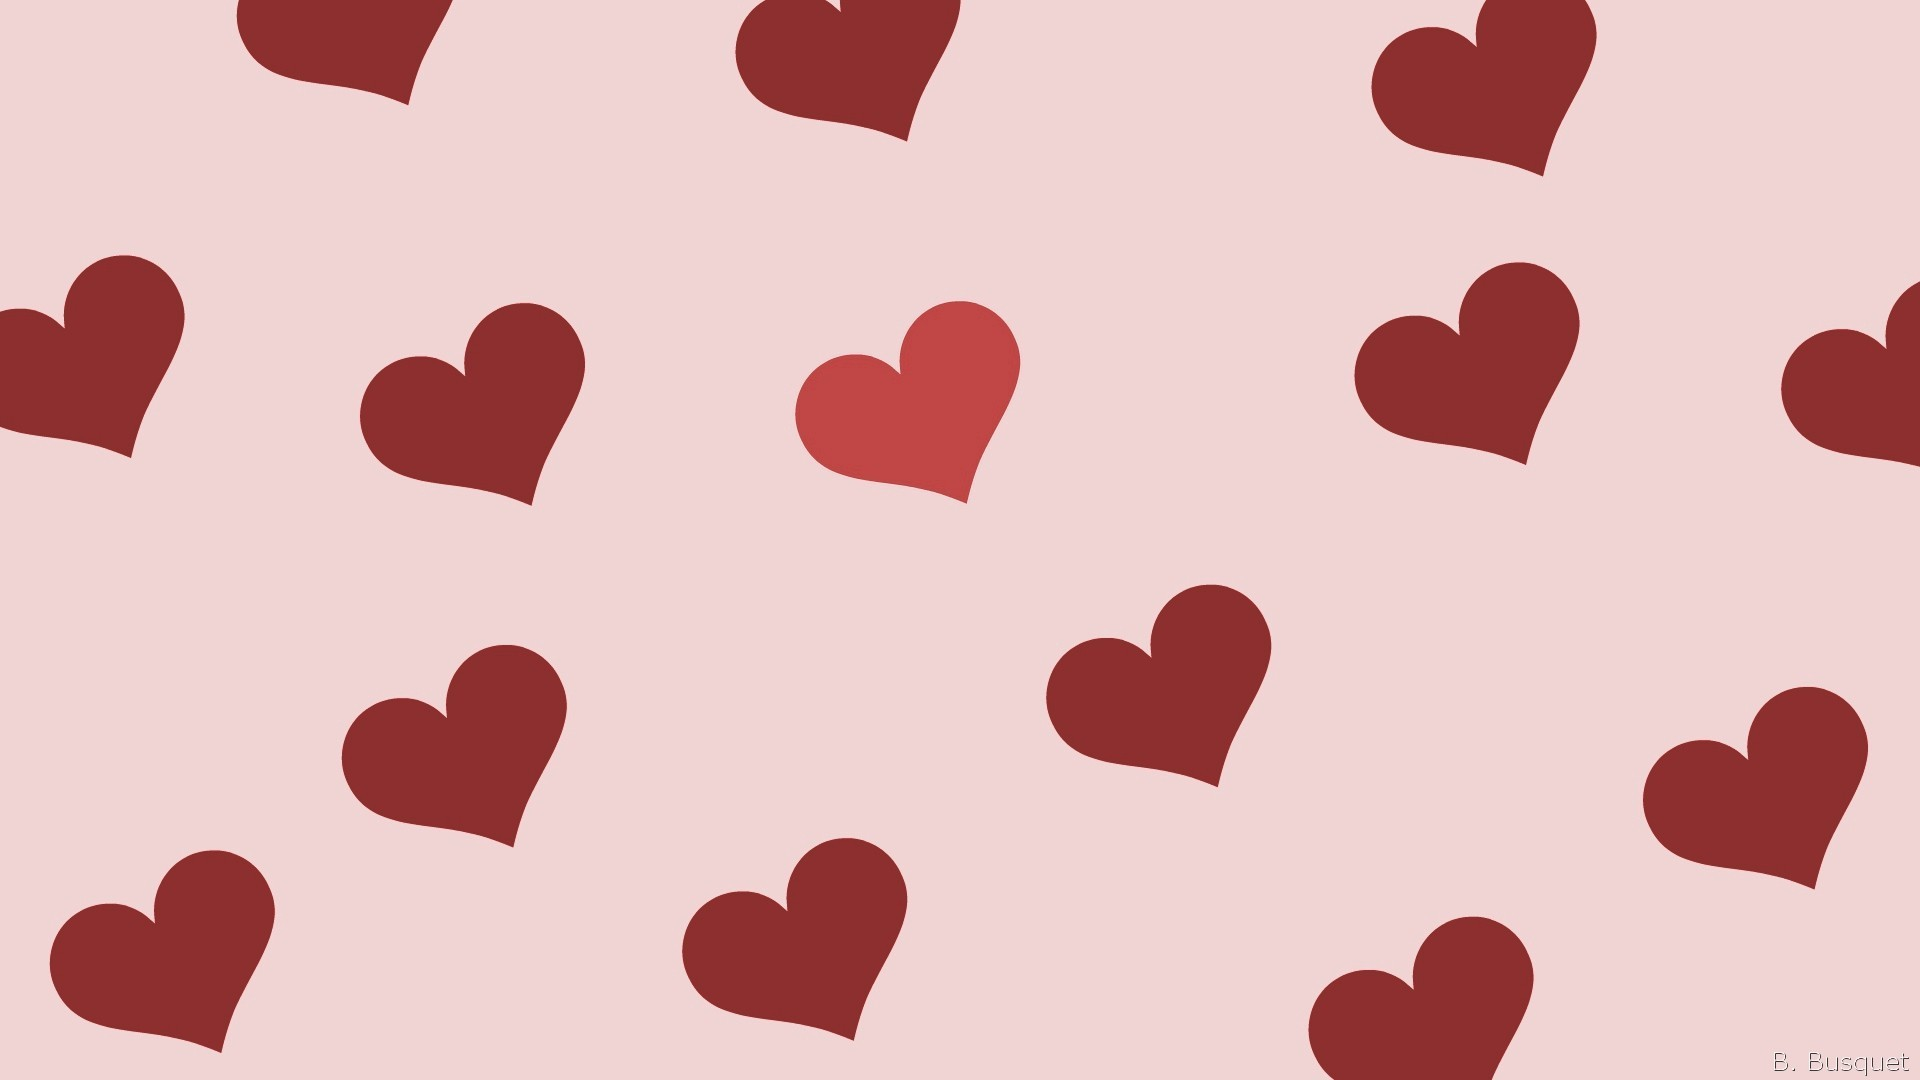 Pink wallpaper with red hearts